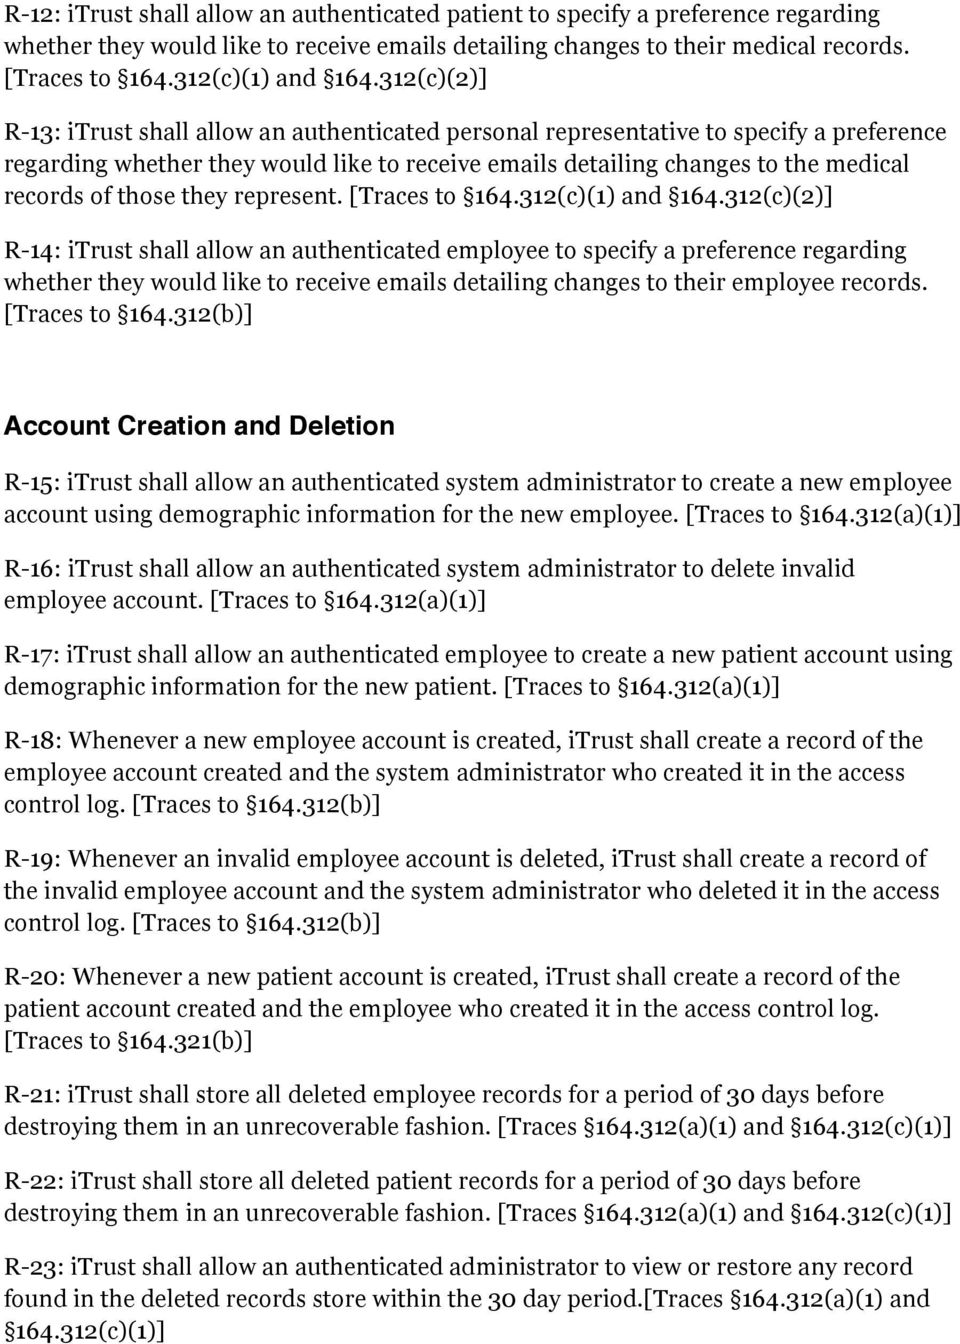 312(c)(2)] R-13: itrust shall allow an authenticated personal representative to specify a preference regarding whether they would like to receive emails detailing changes to the medical records of